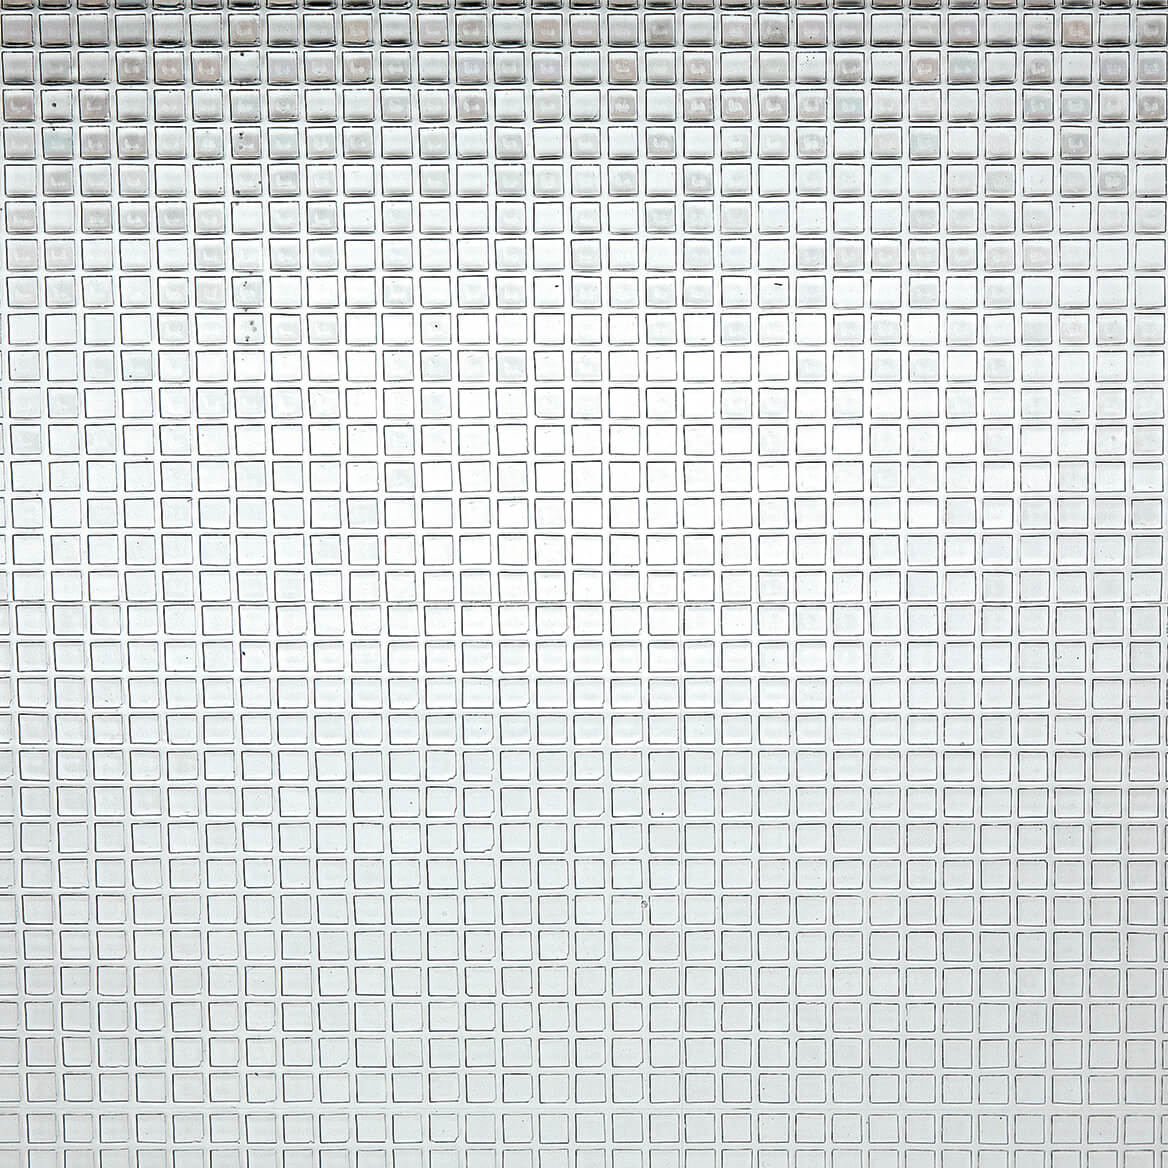 Mosaic Static Cling Privacy Window Film-371550